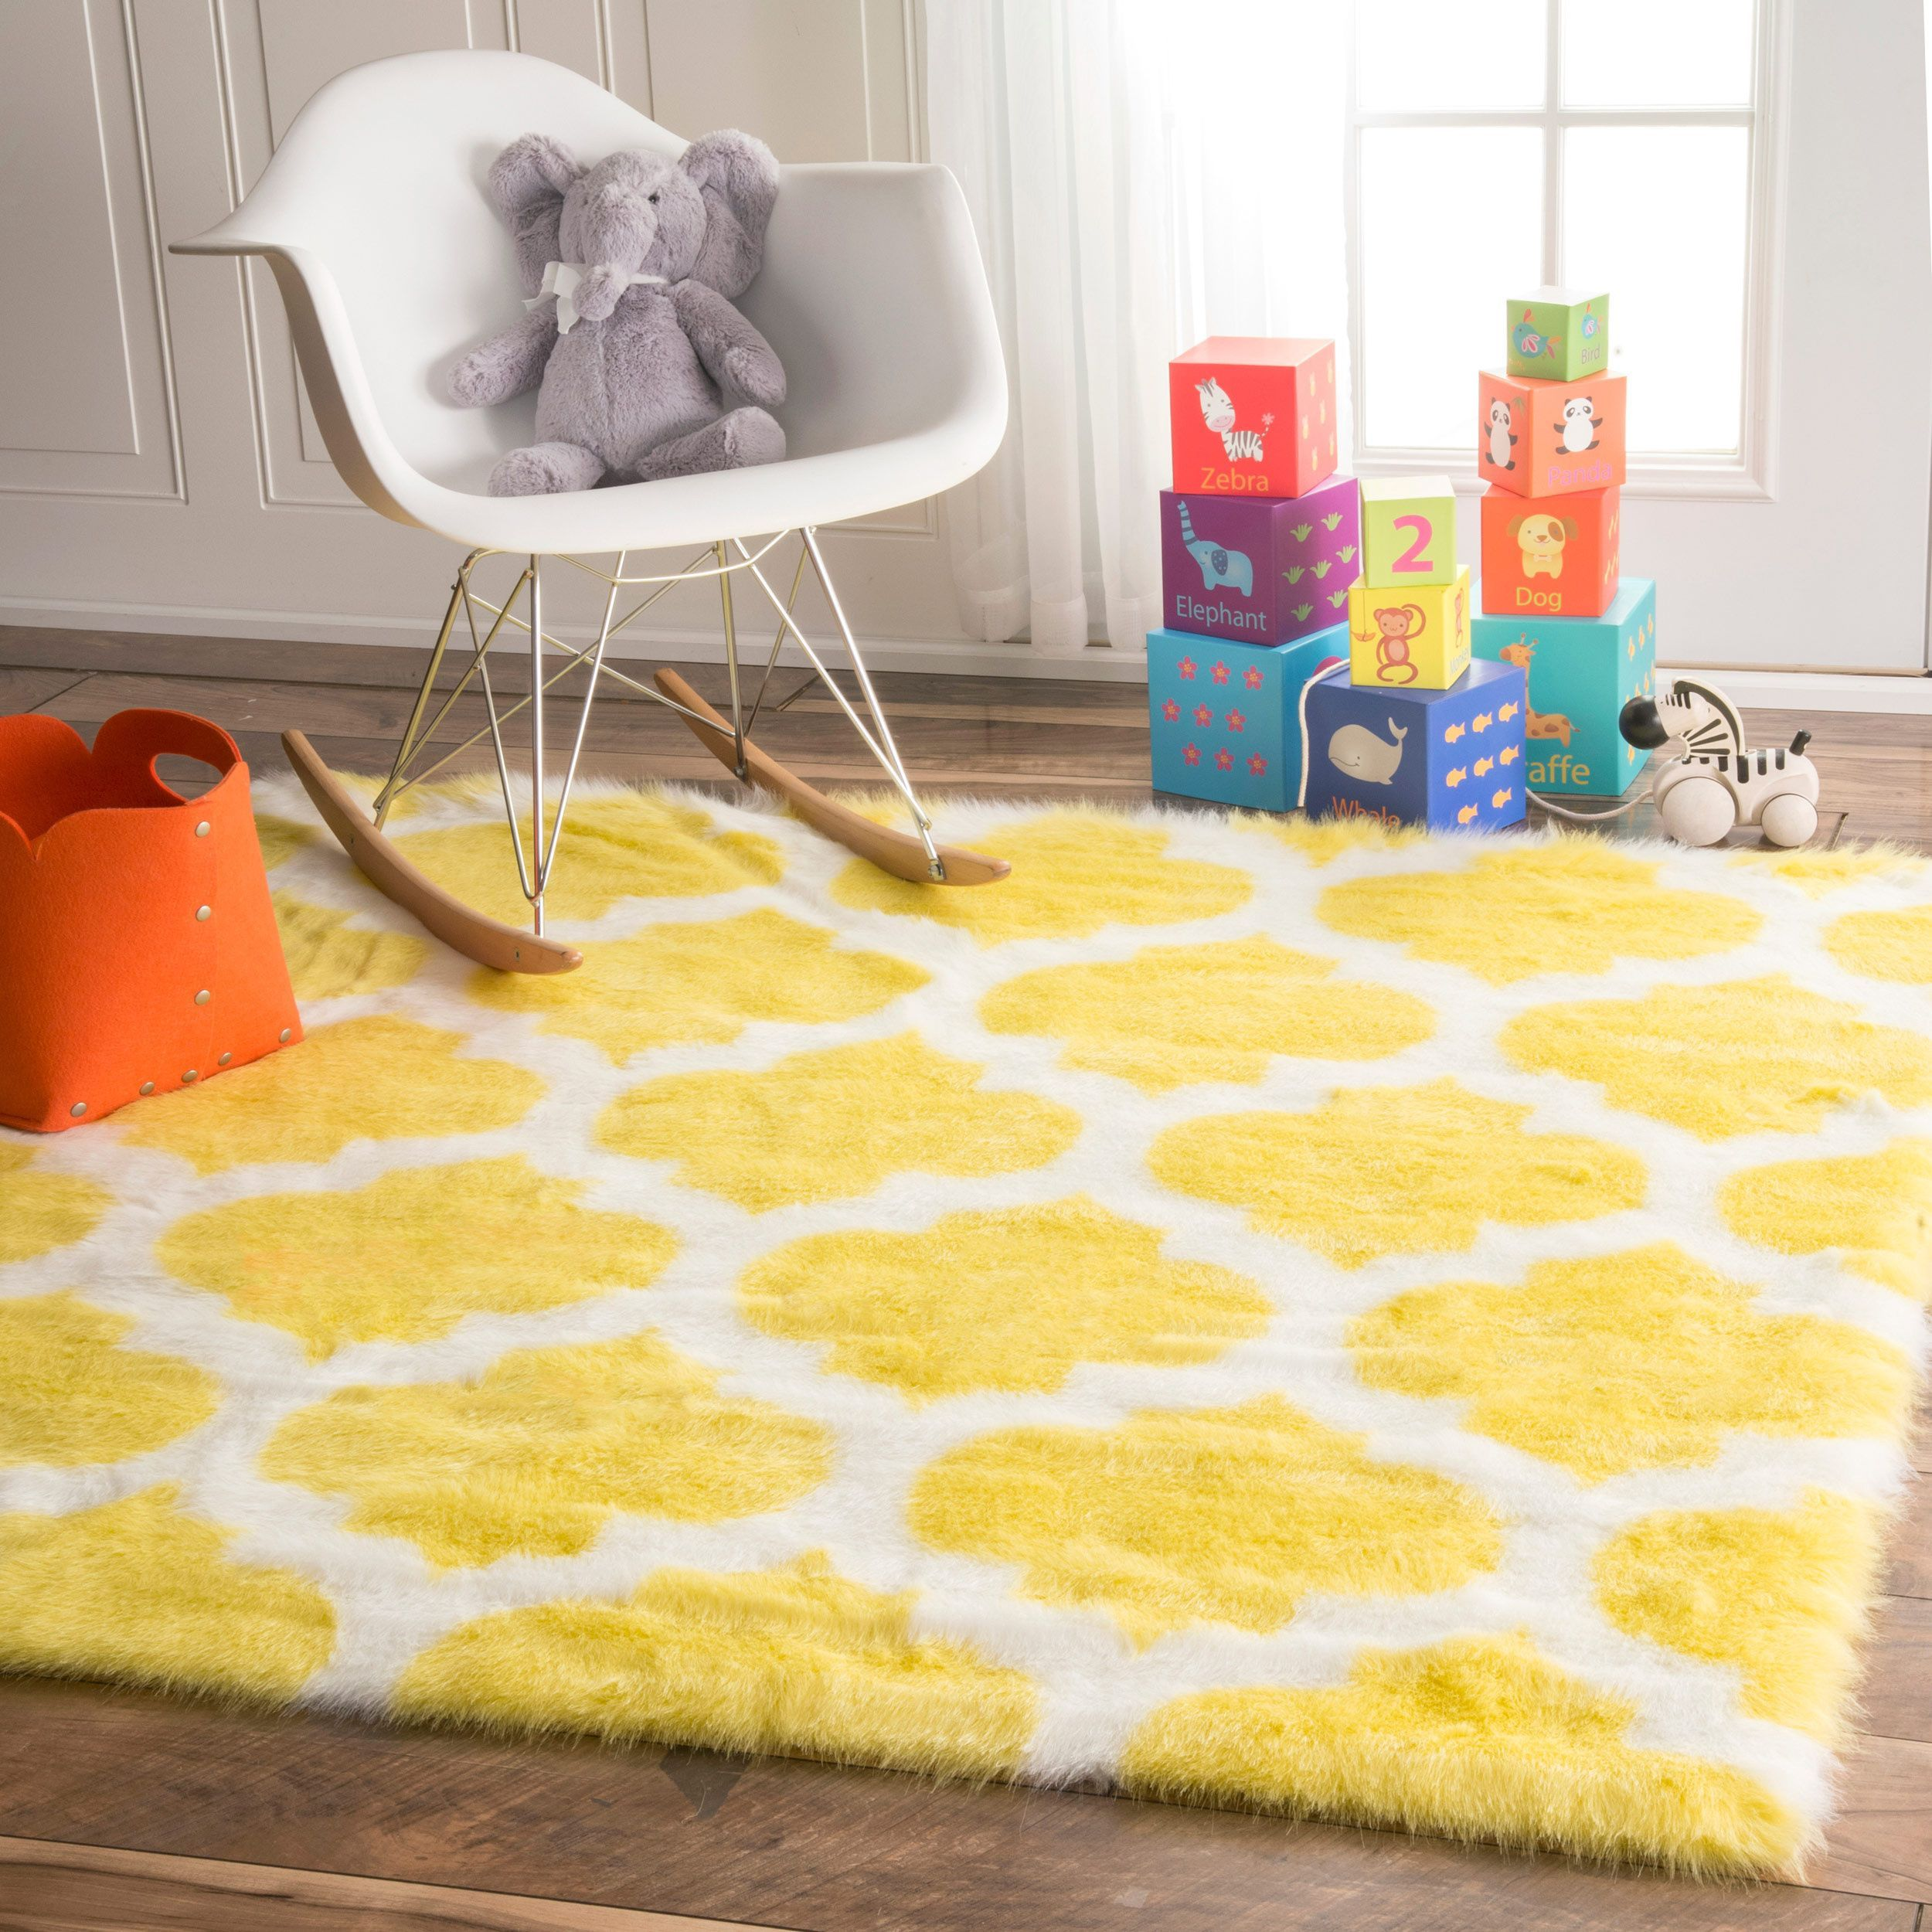 Nuloom Cozy Soft And Plush Faux Sheepskin Tellis Kids Nursery Yellow Rug